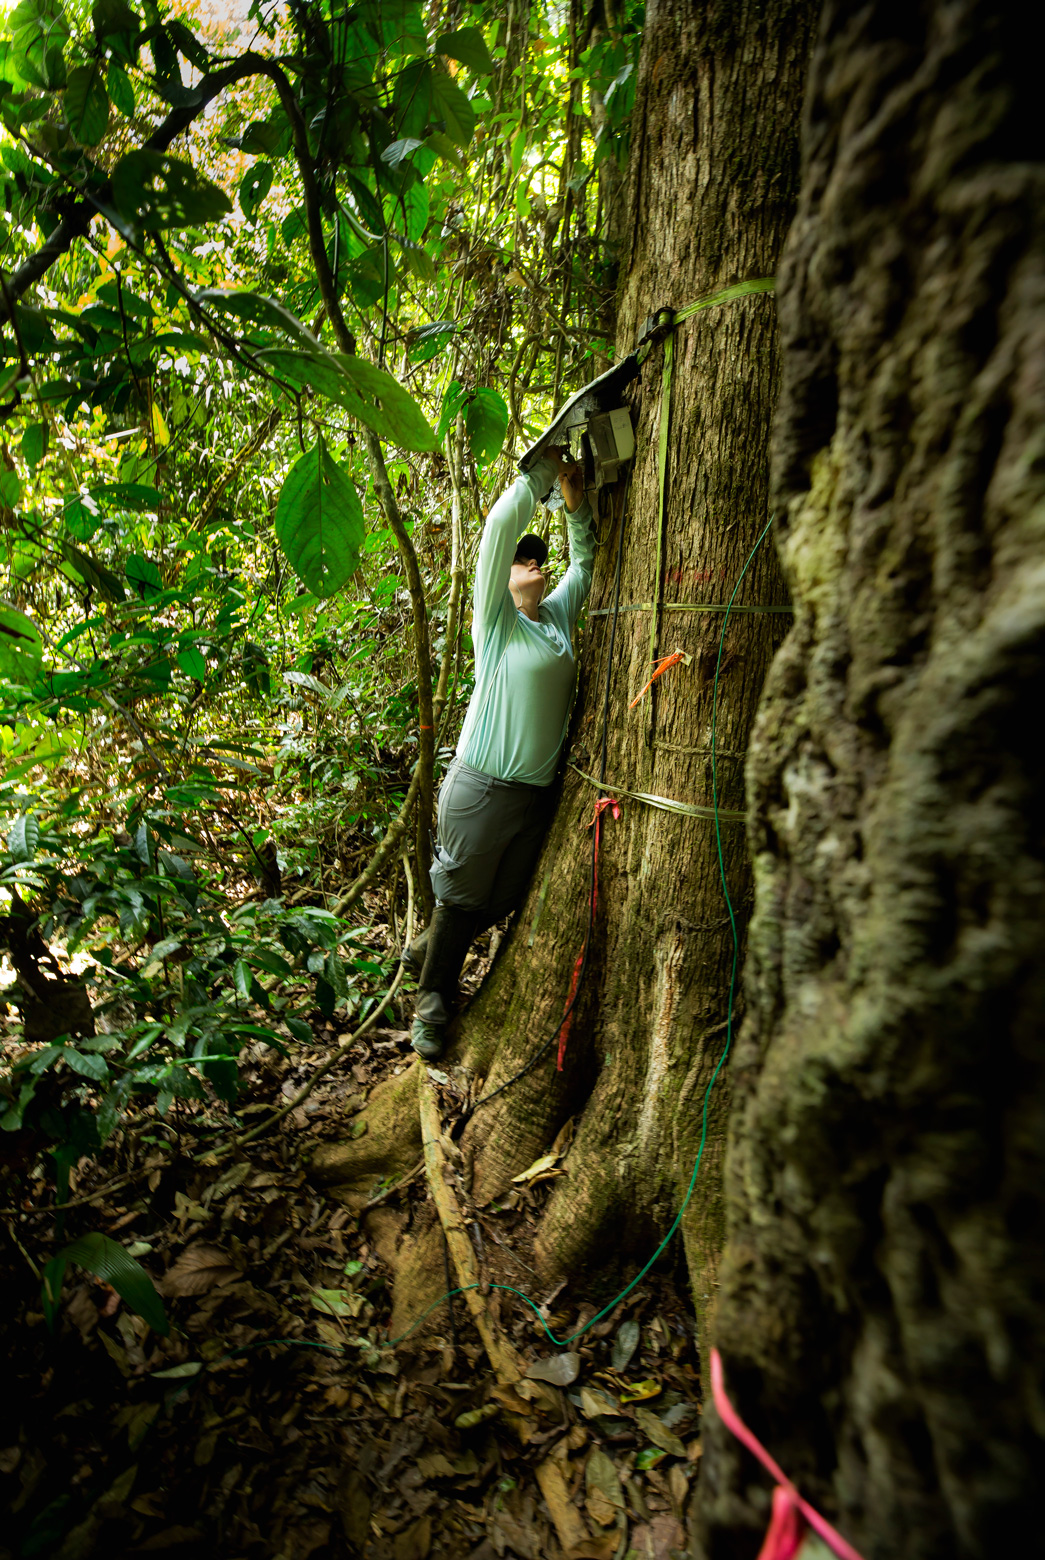 Grad student Agee leans against a tree in the Amazon